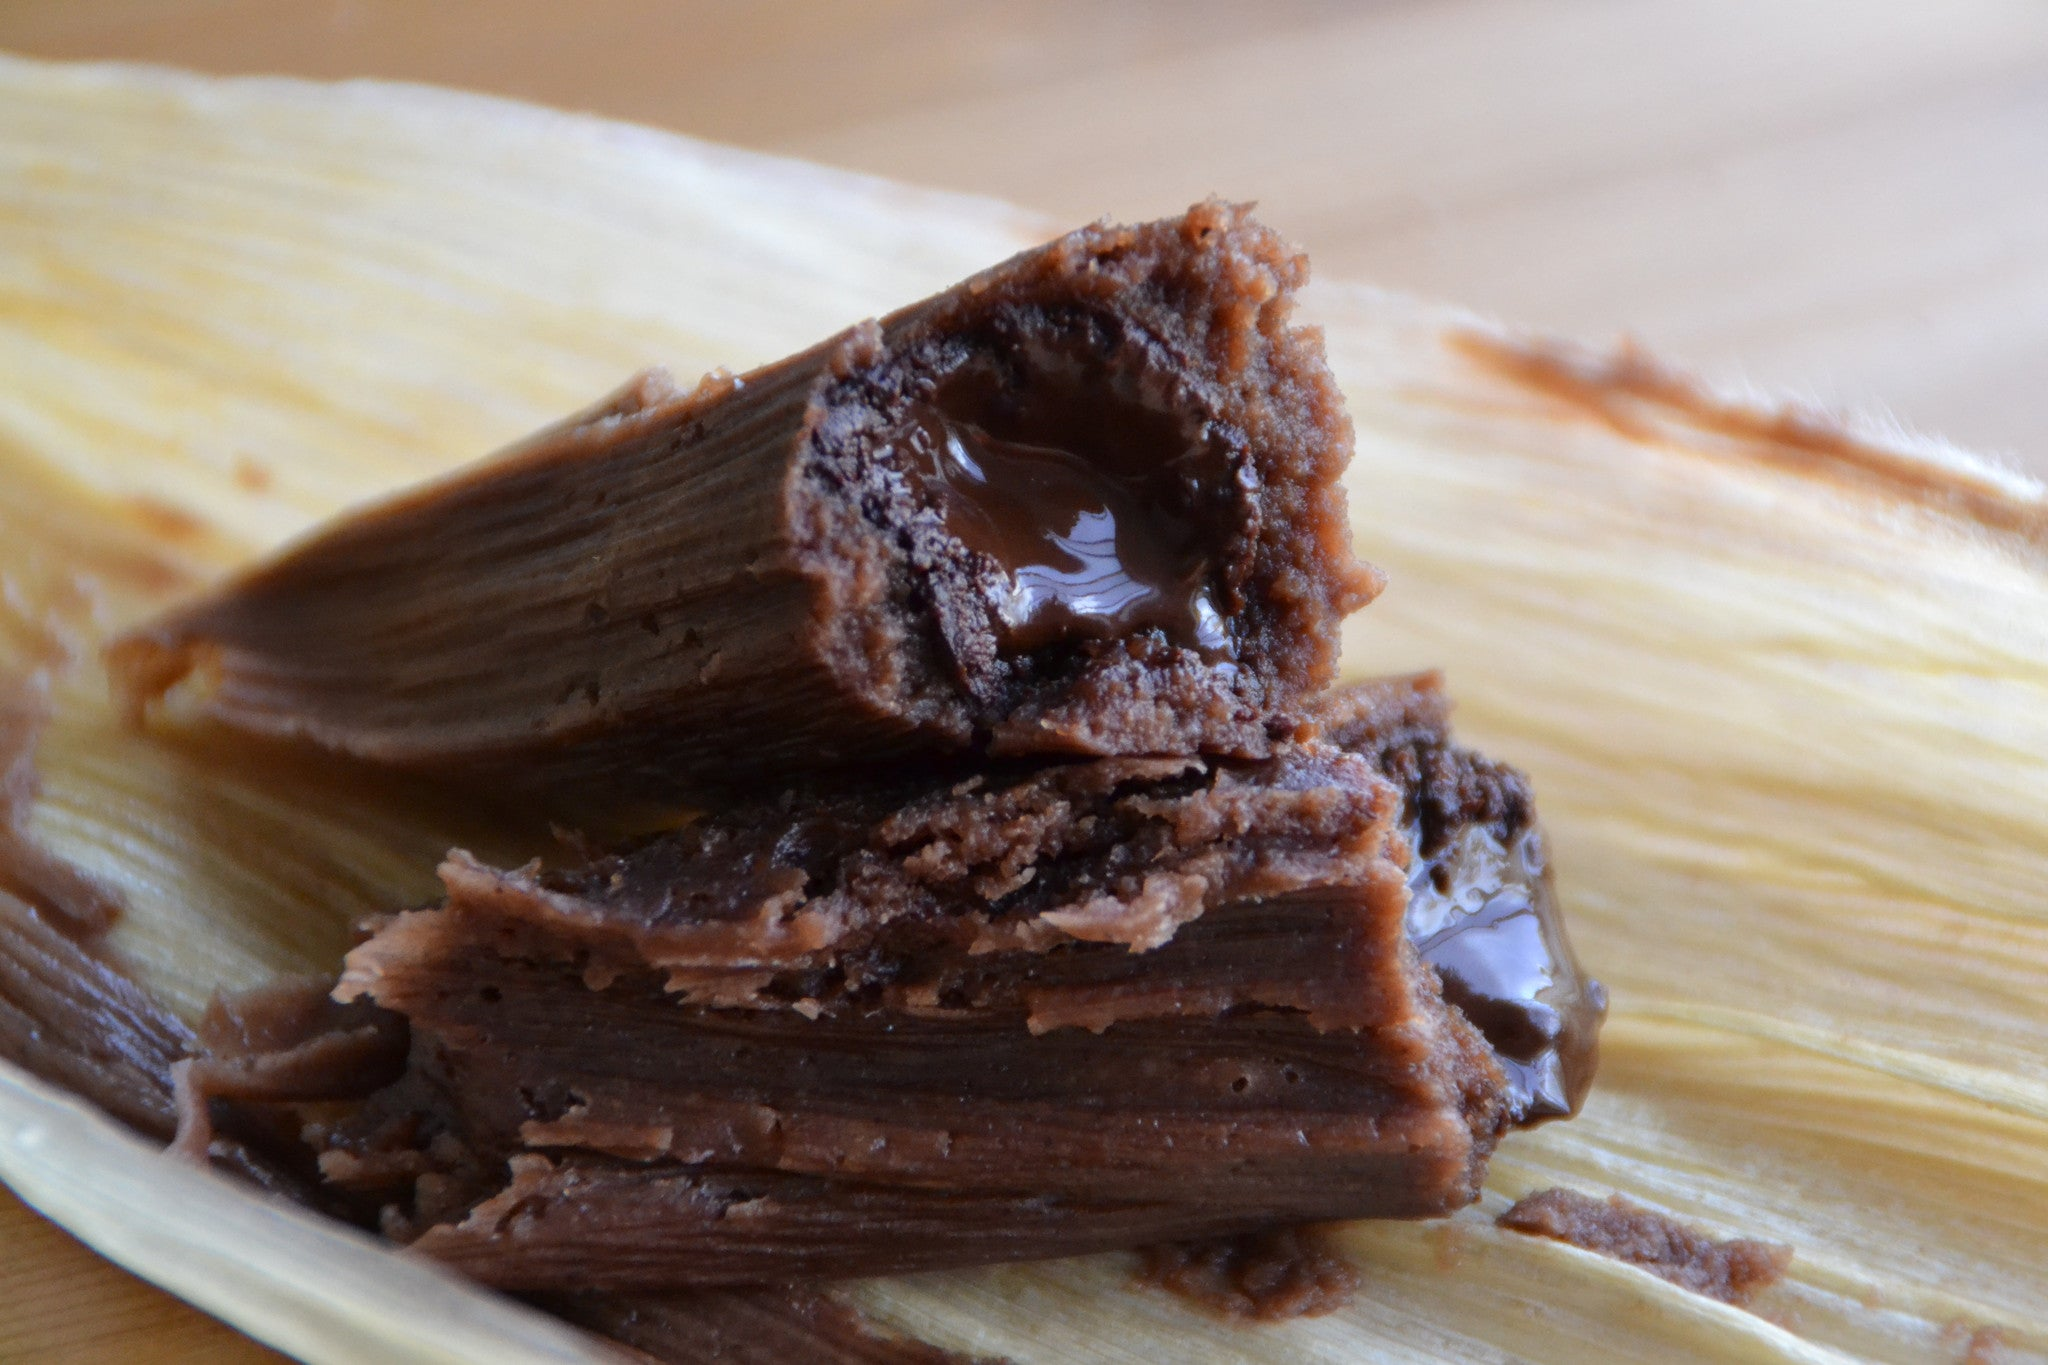 Chocolate Tamales - My interpretation of sweet tamales with Dandelion Chocolate